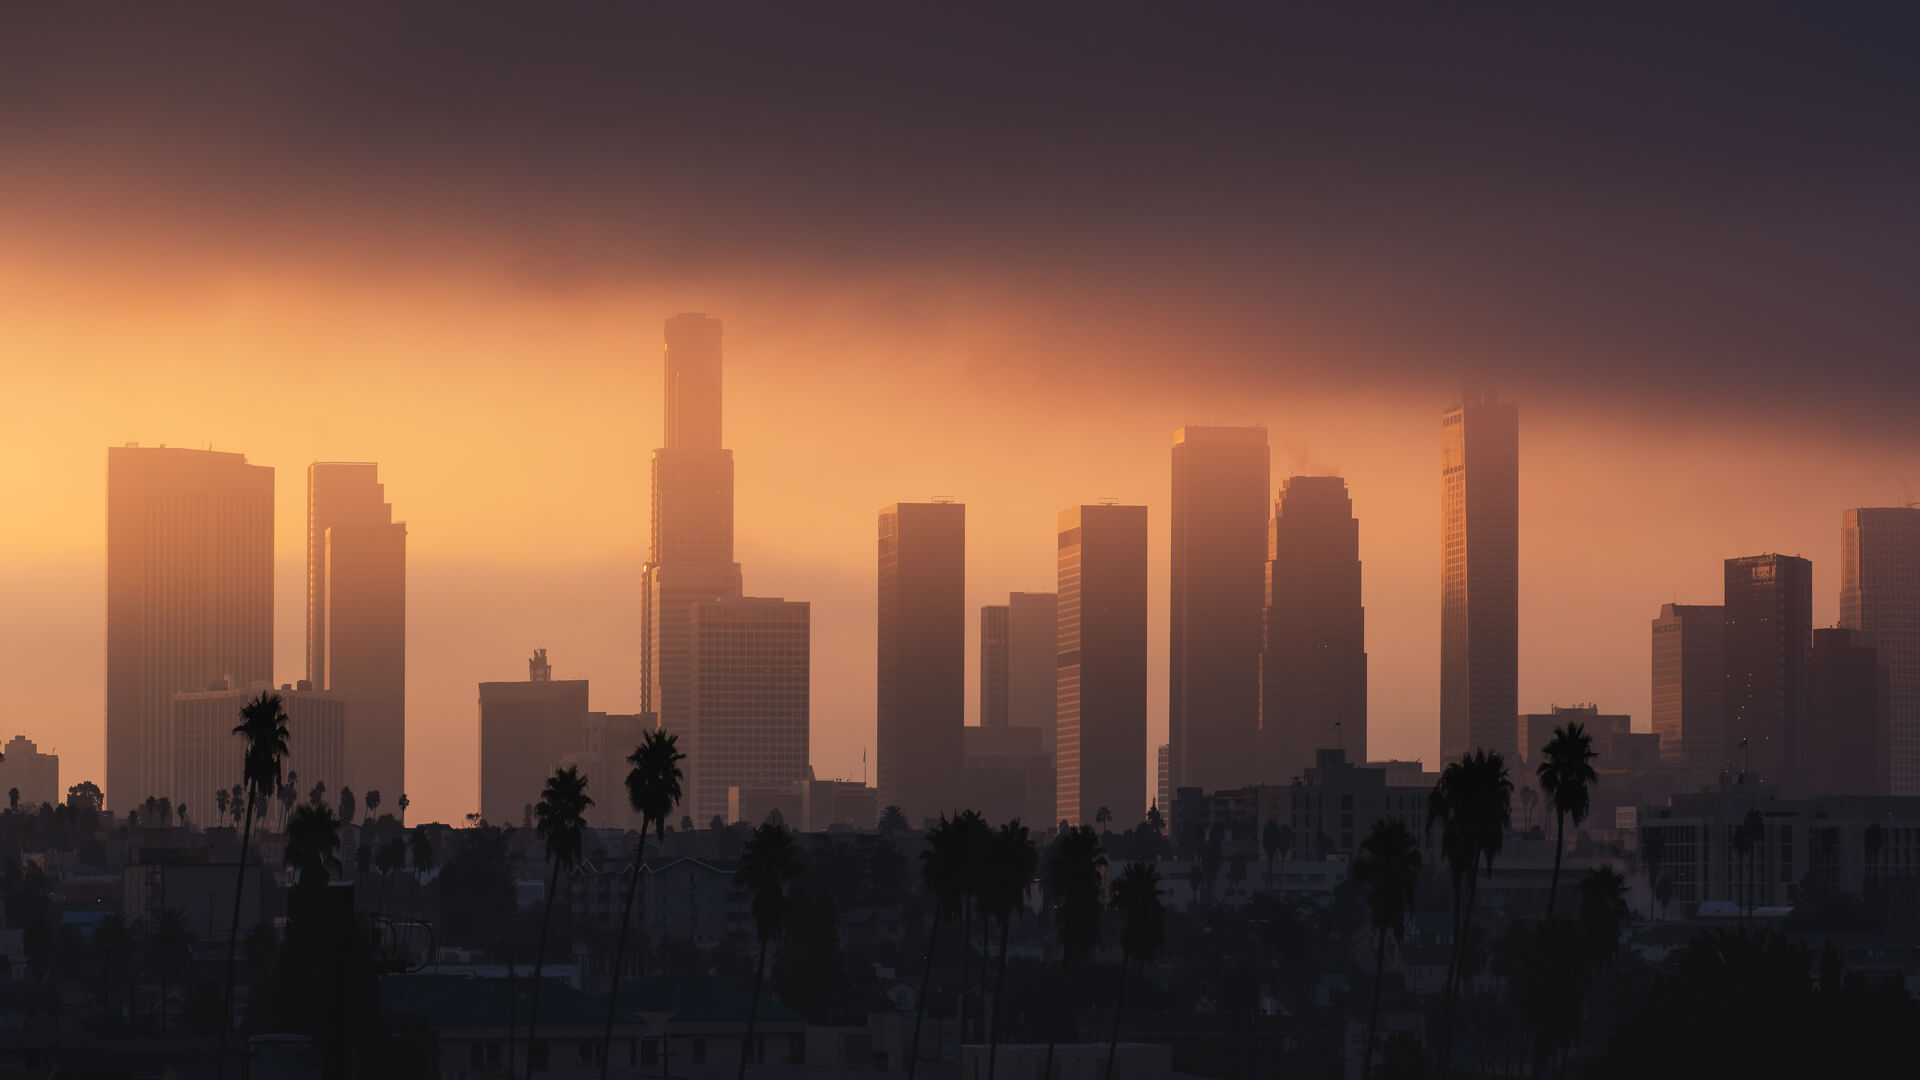 25 Most Polluted Cities in the US